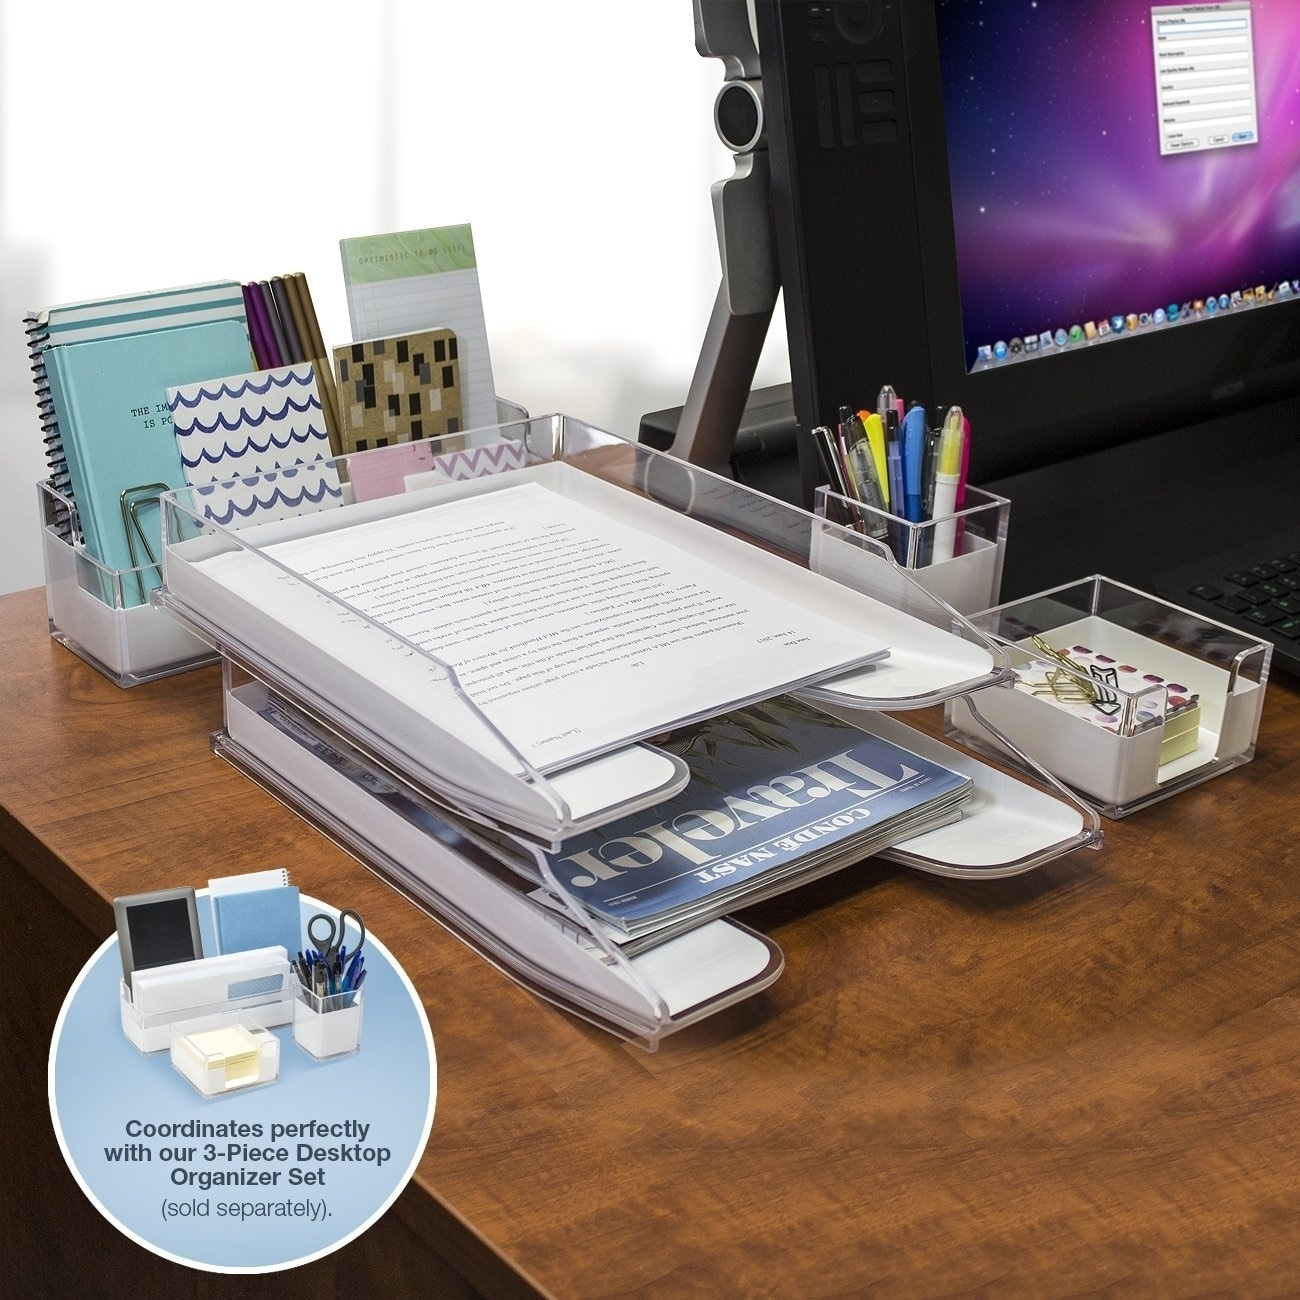 sets officeworks organiser com organizer onsingularity desk set